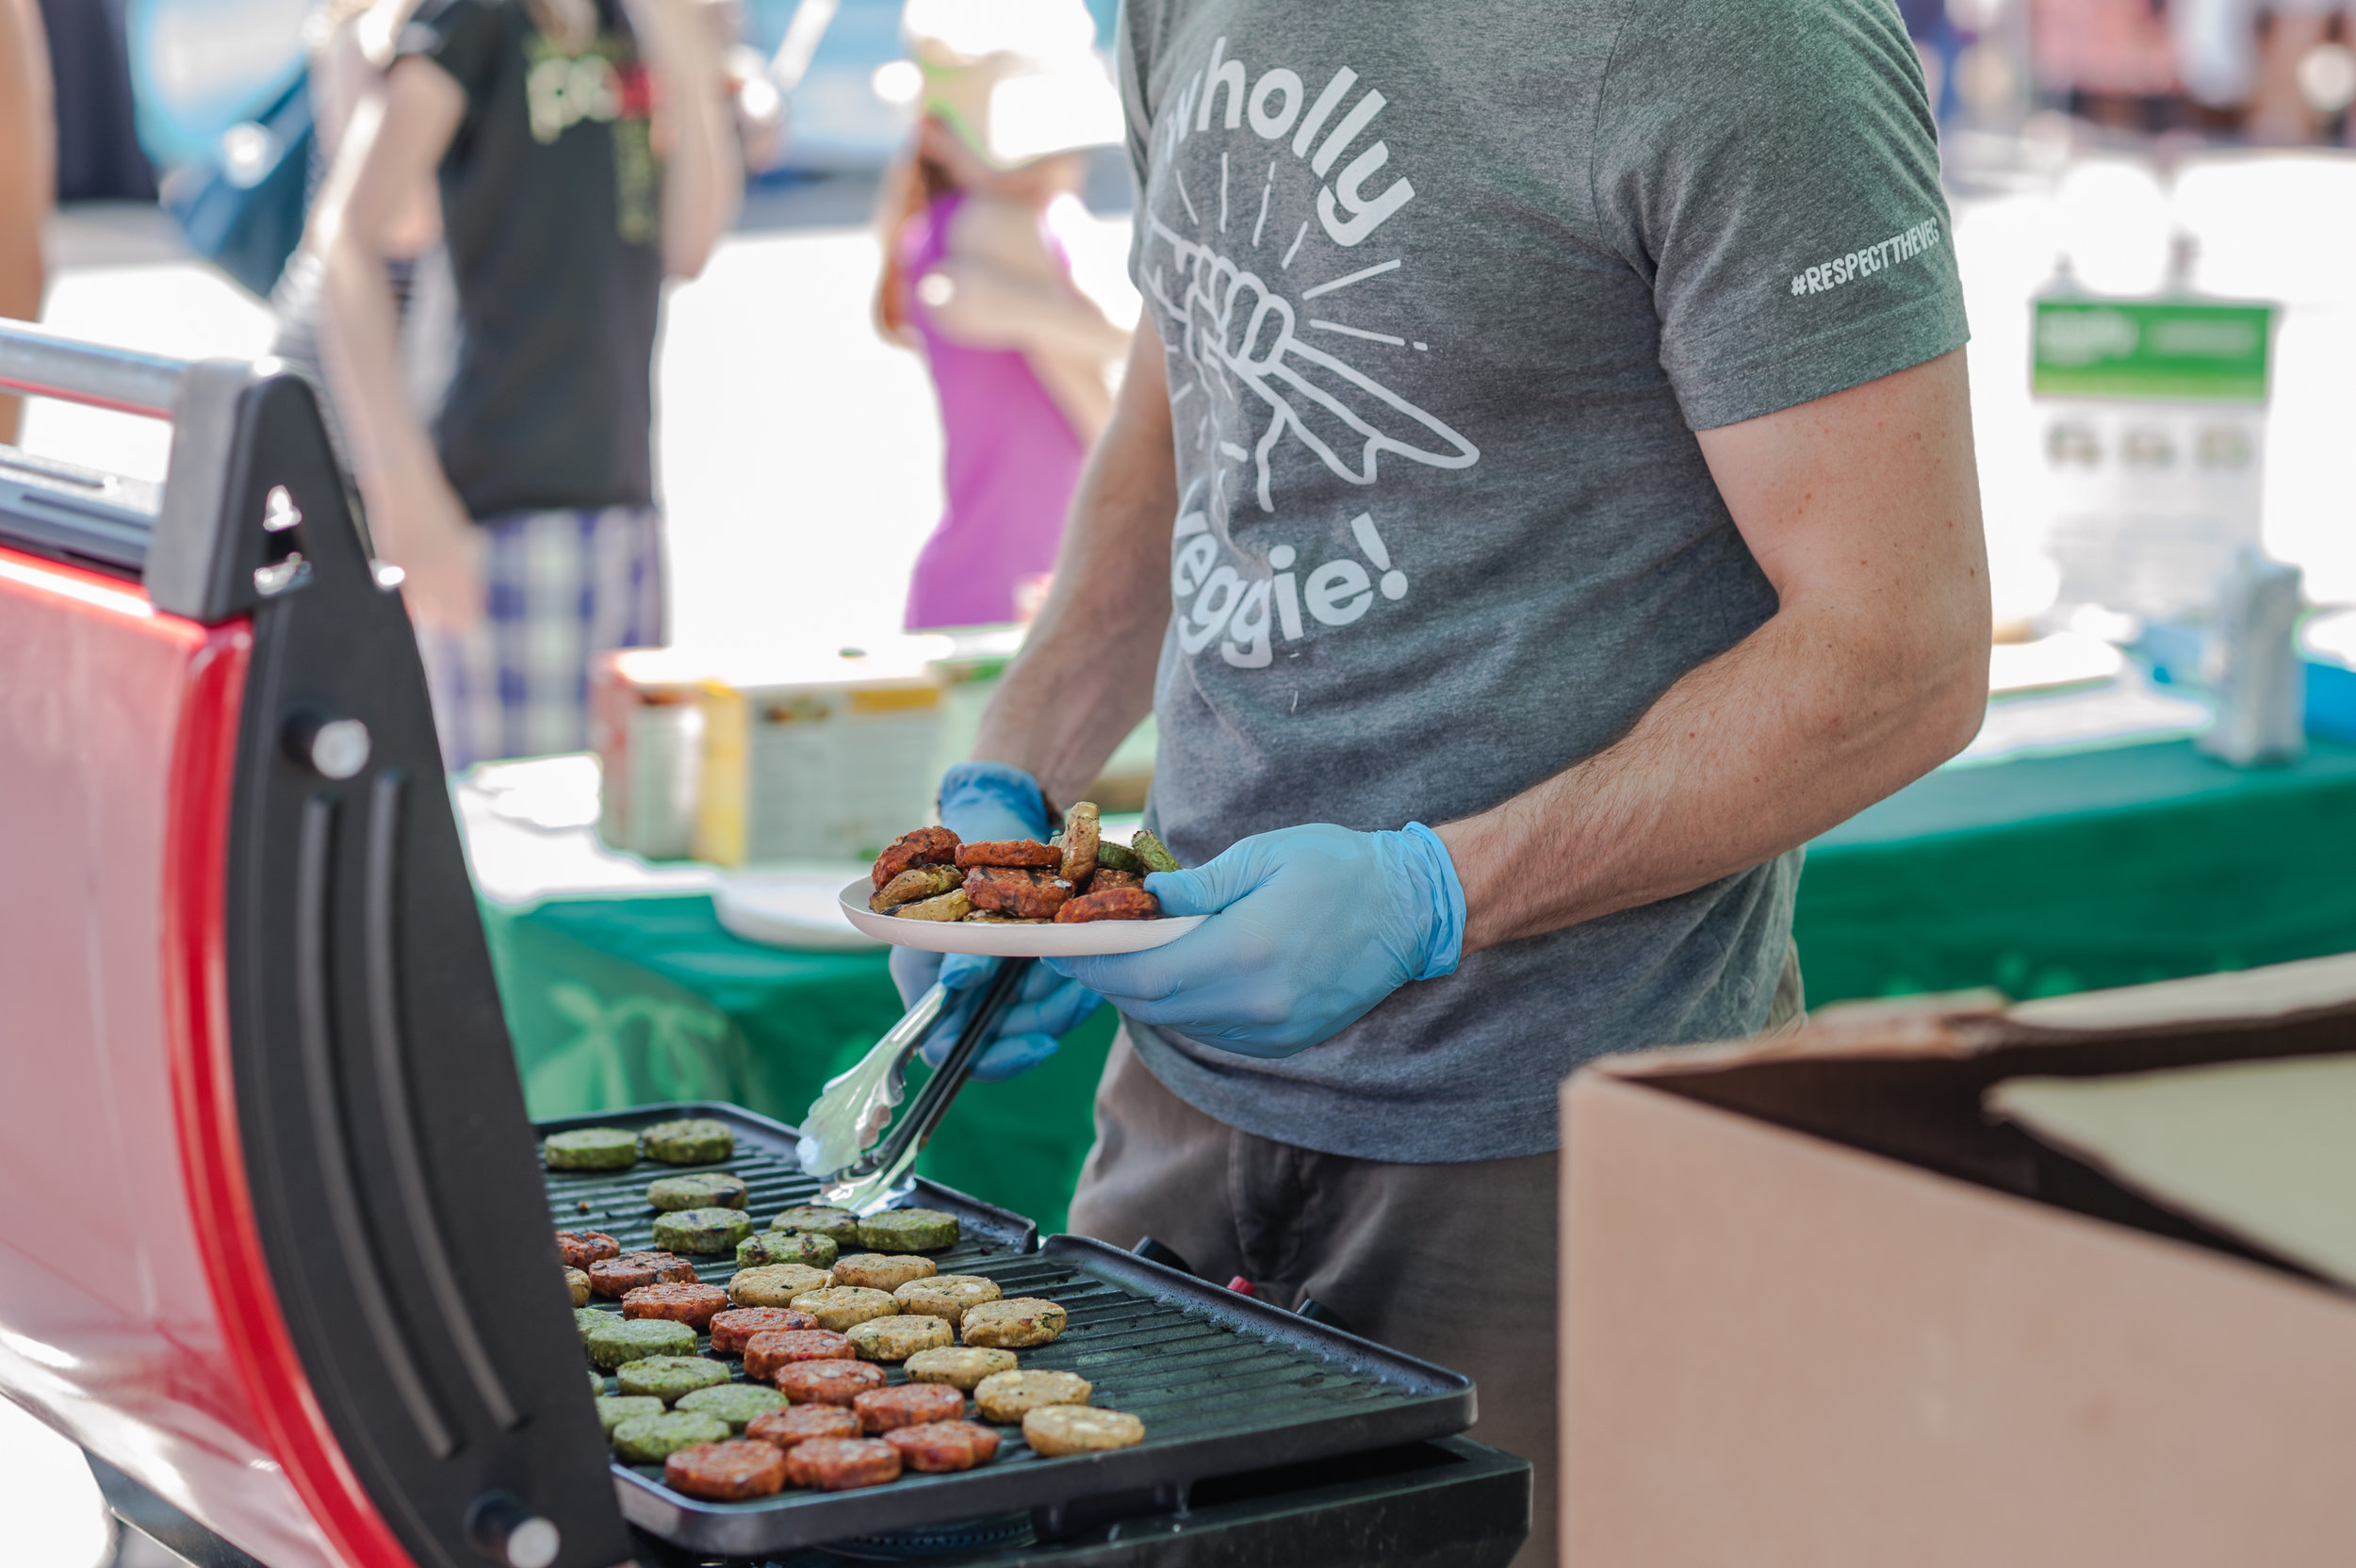 There was no shortage of vegan eats, including complimentary tasting items!  Wholly Veggie  sampled a variety of veggie burgers for guests to enjoy.  Photo by:    LOF Photography   .